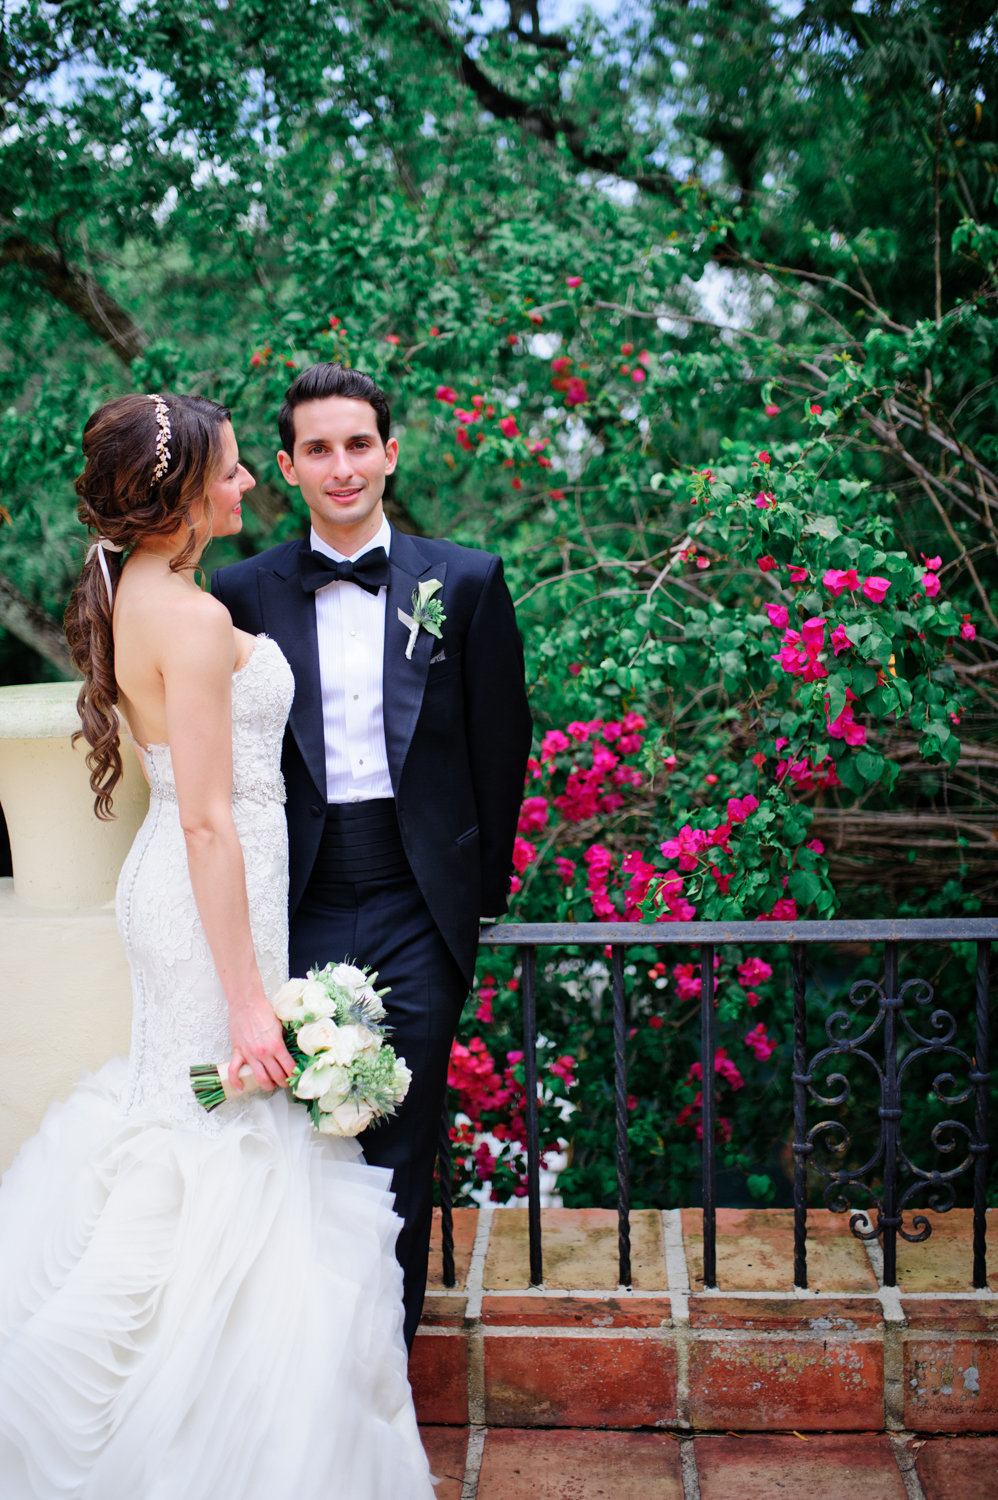 A Miami wedding photographer-168